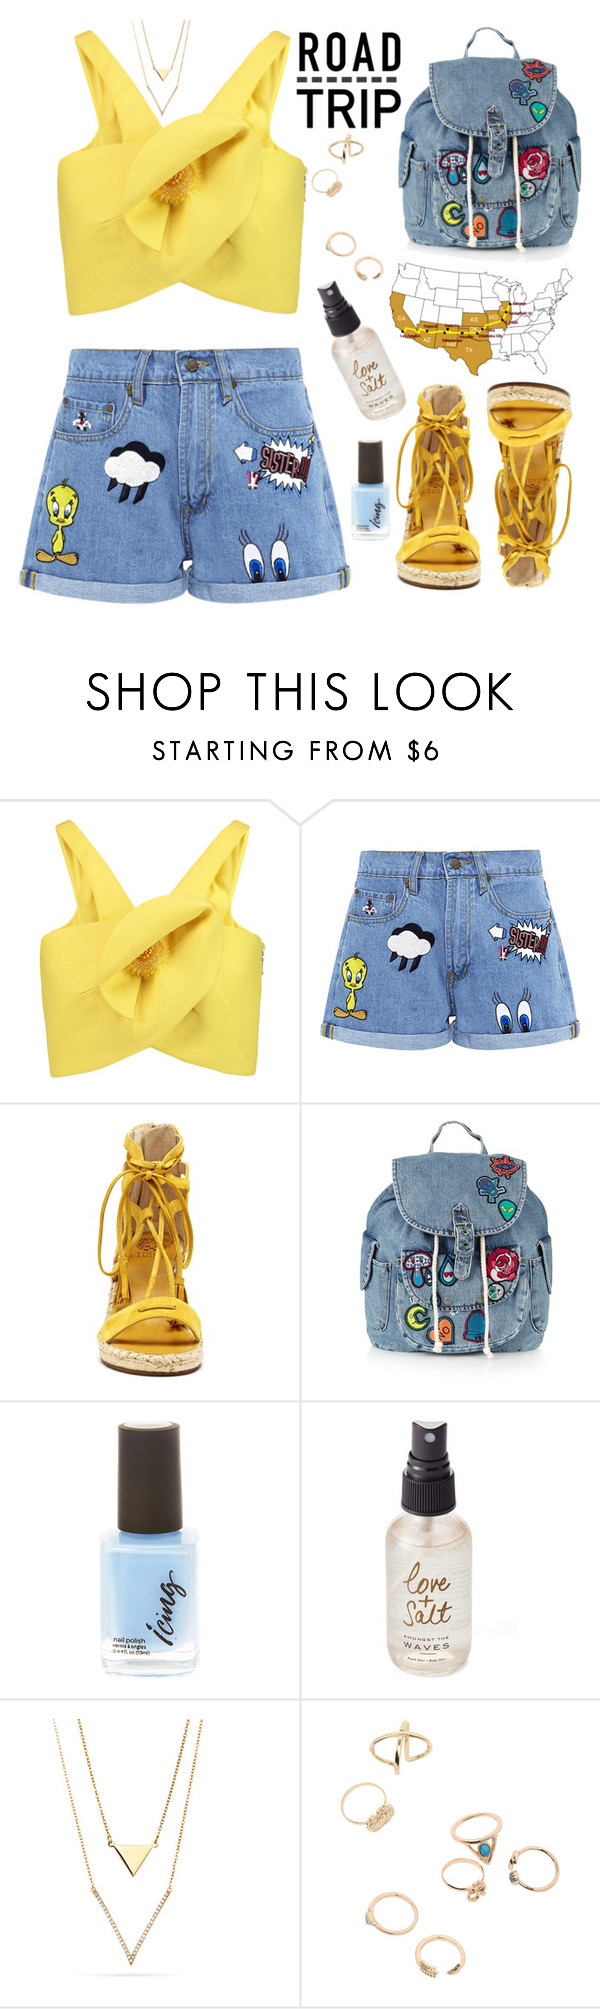 """""""Untitled #2843"""" by deeyanago ❤ liked on Polyvore featuring Delpozo, Paul & Joe Sister, Vince Camuto, Topshop, Olivine and roadtrip"""